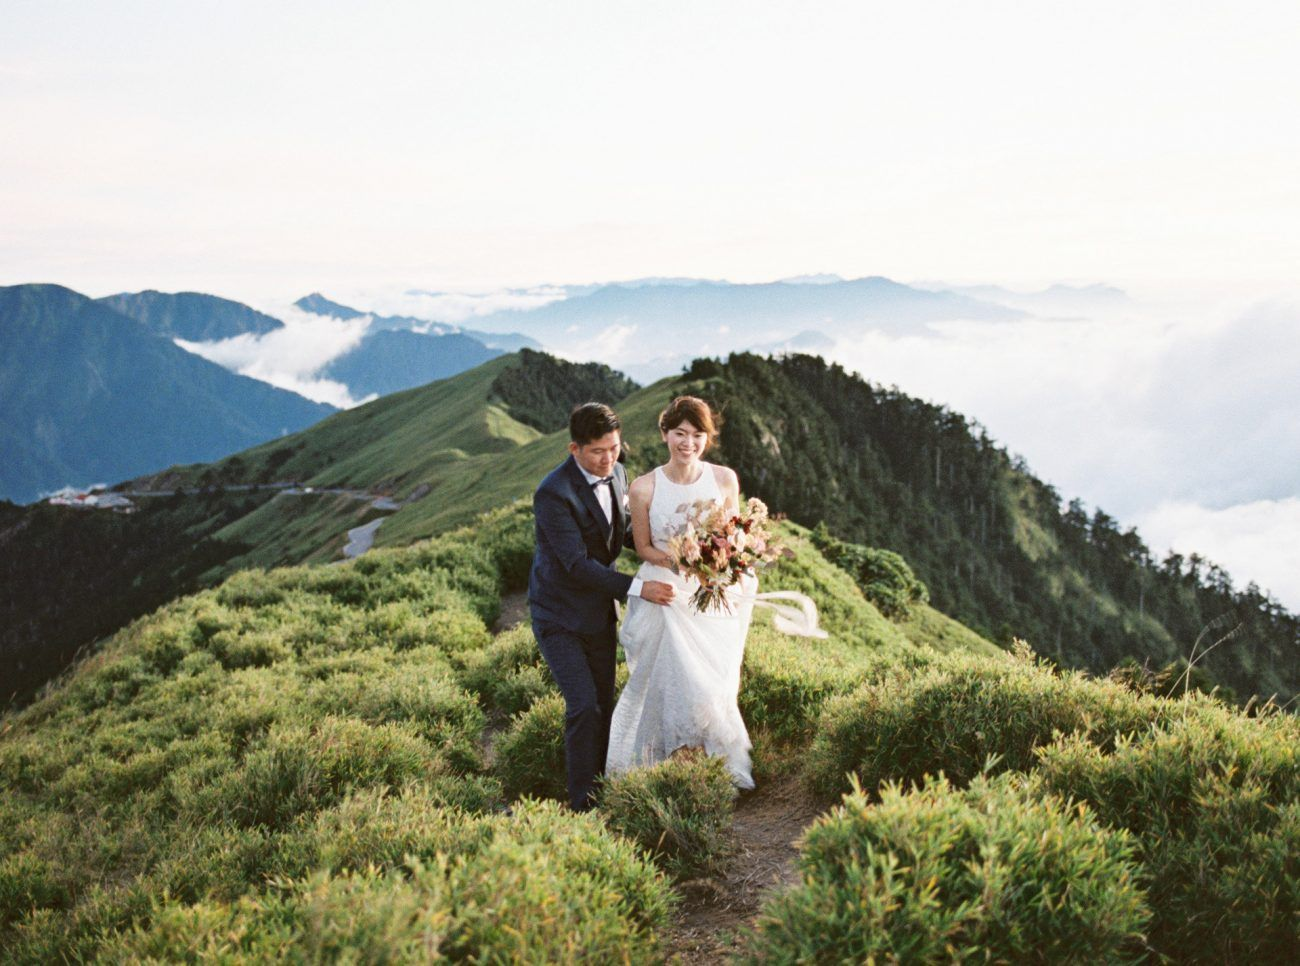 A Mountain Top Elopement in Taiwan